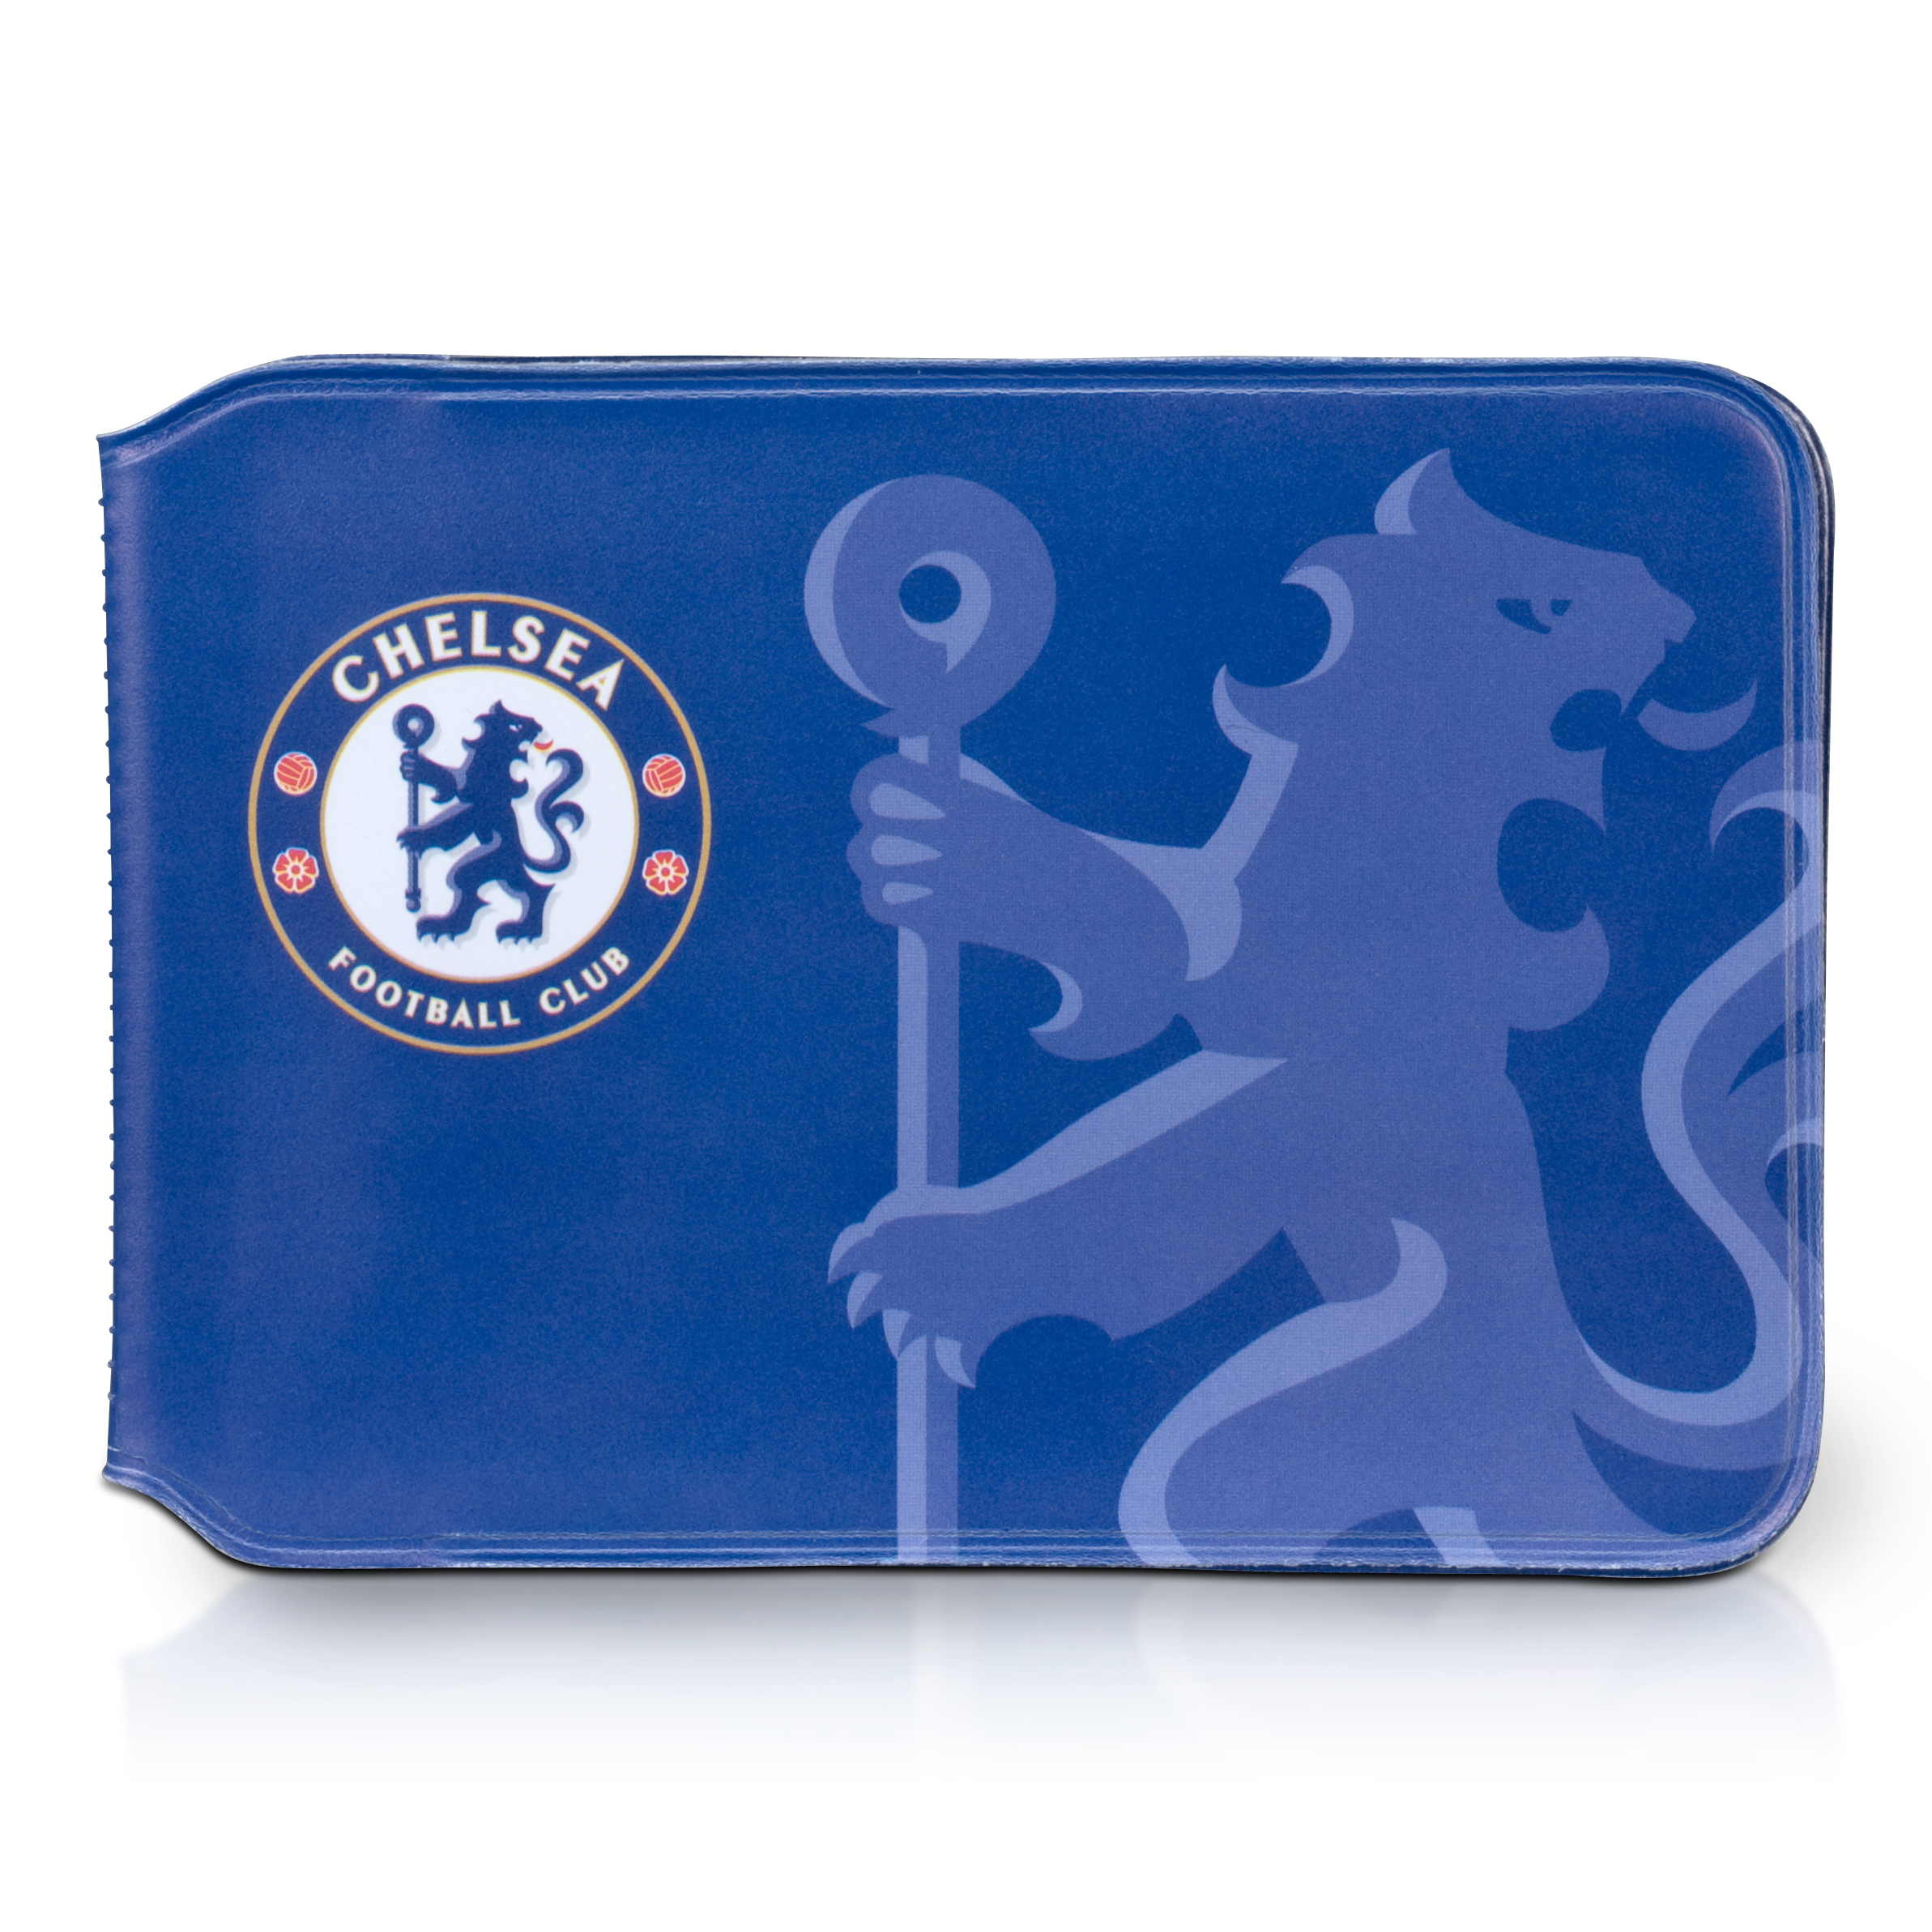 Chelsea Season Ticket Wallet